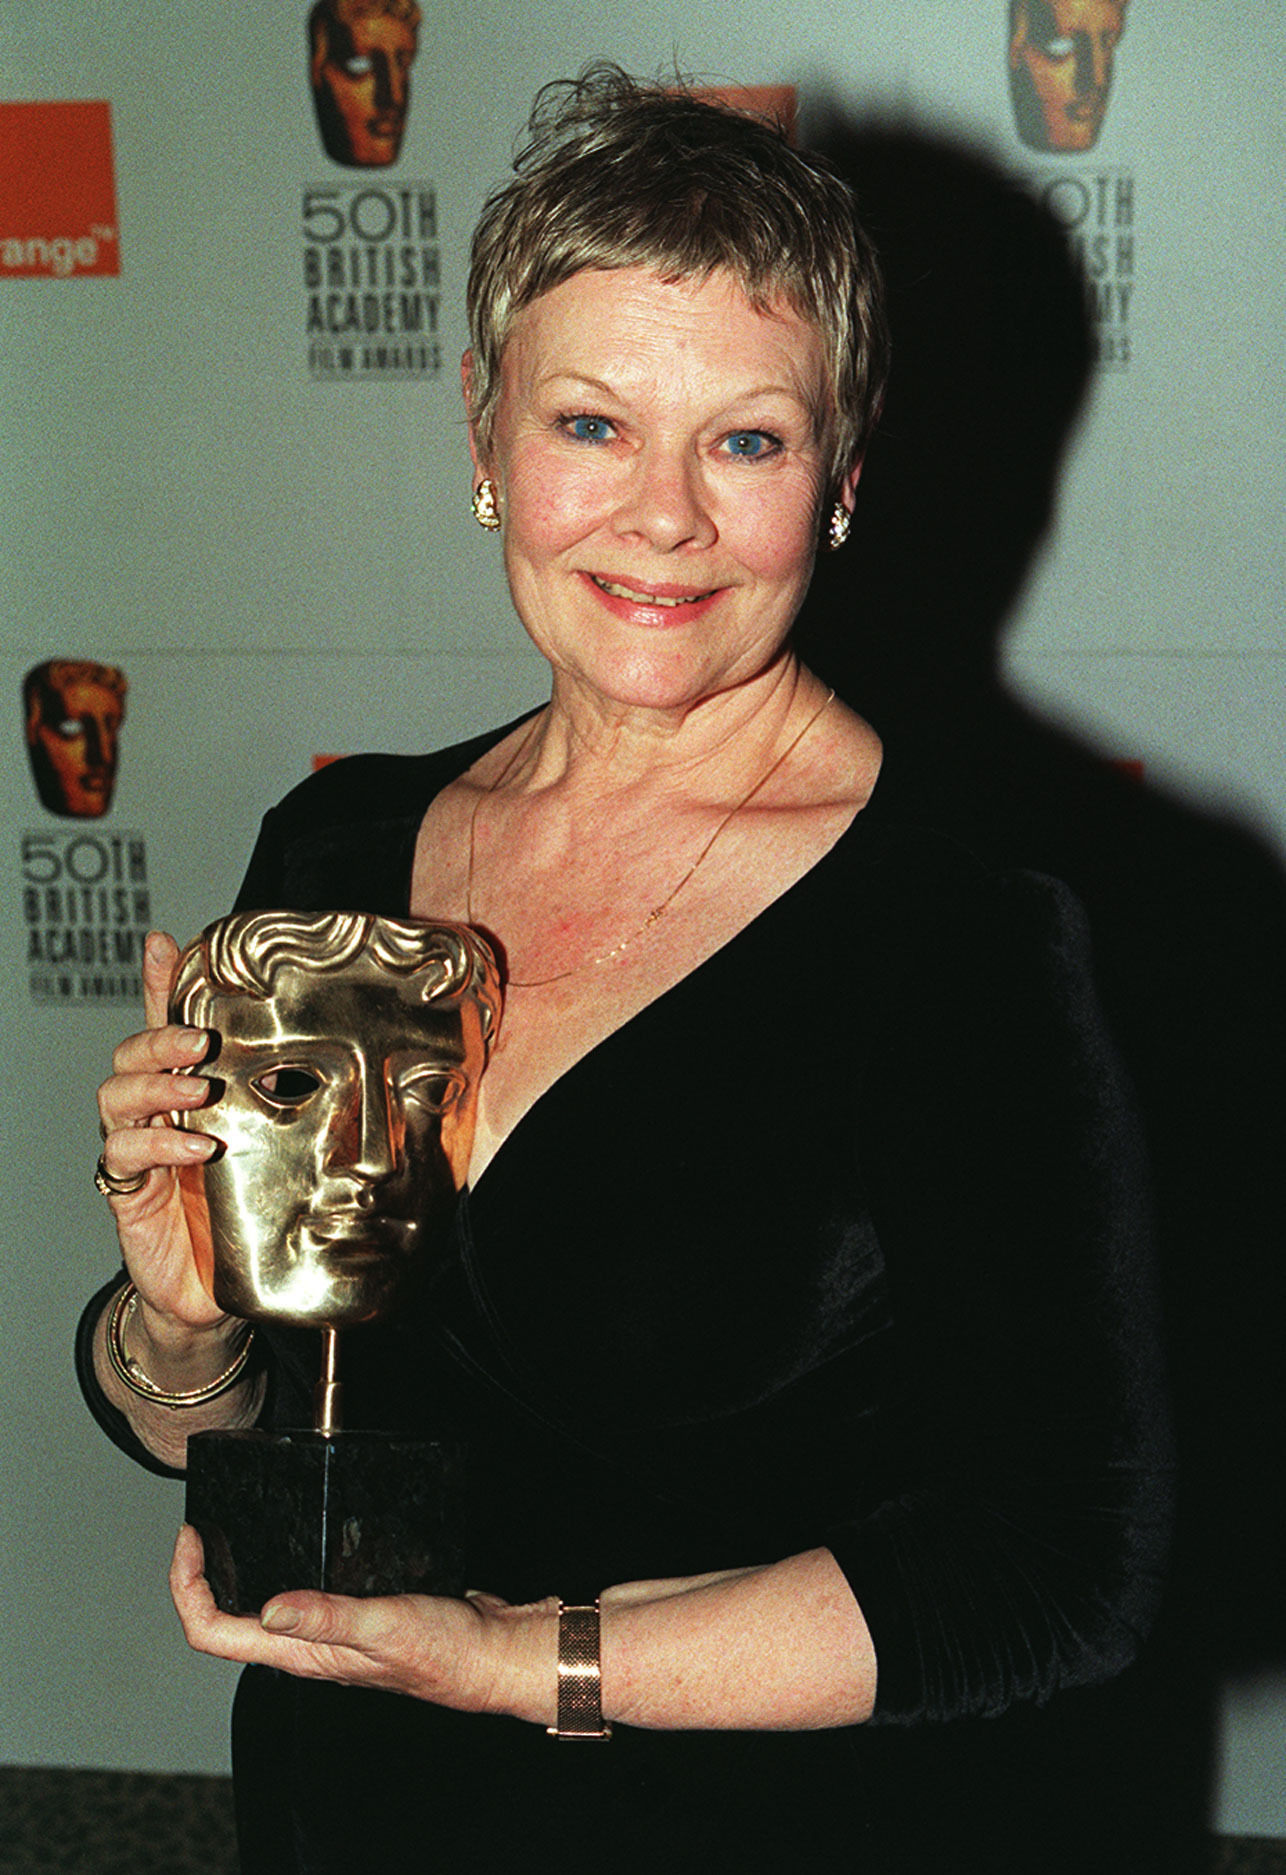 Judi Dench winning the best actress award for Mrs Brown at the 1998 Baftas